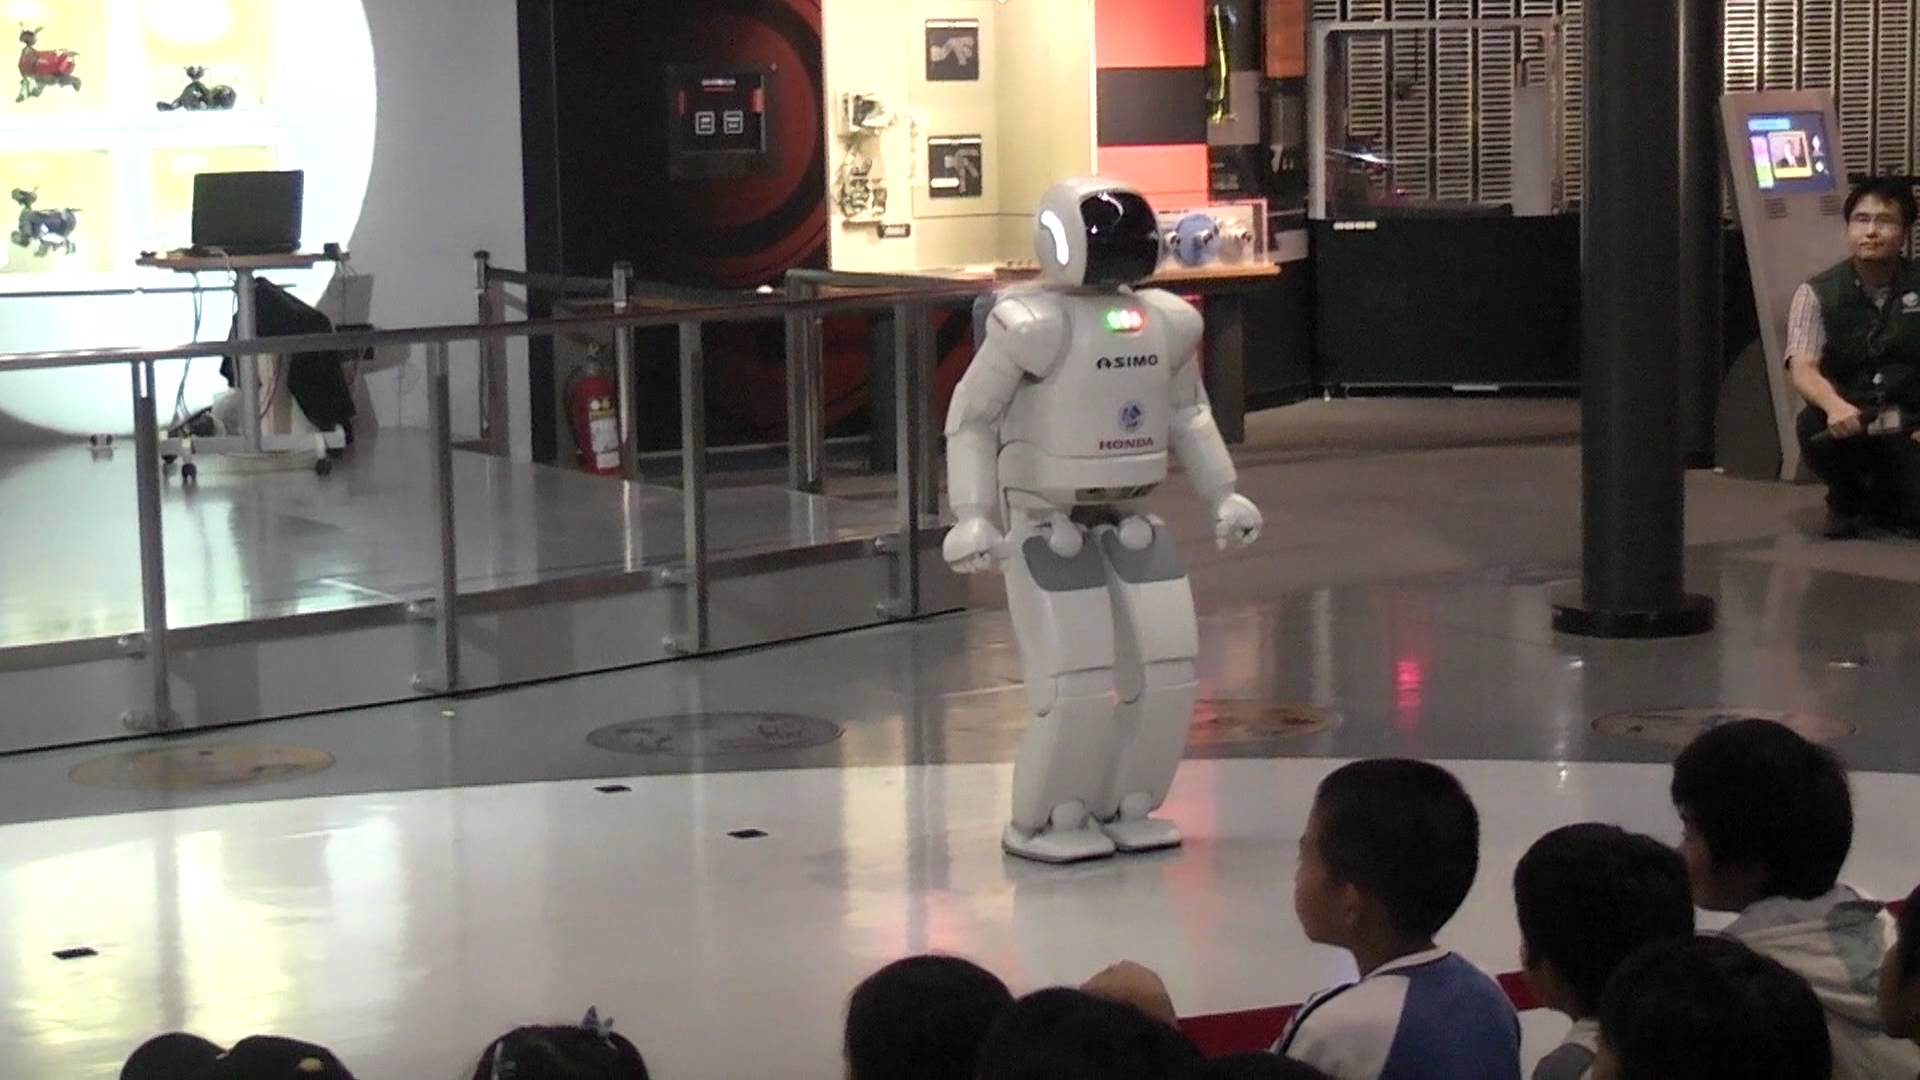 Baseball Hall of Fame & Museum Tokyo, ASIMO - The National Museum of Emerging Science and Innovation ...